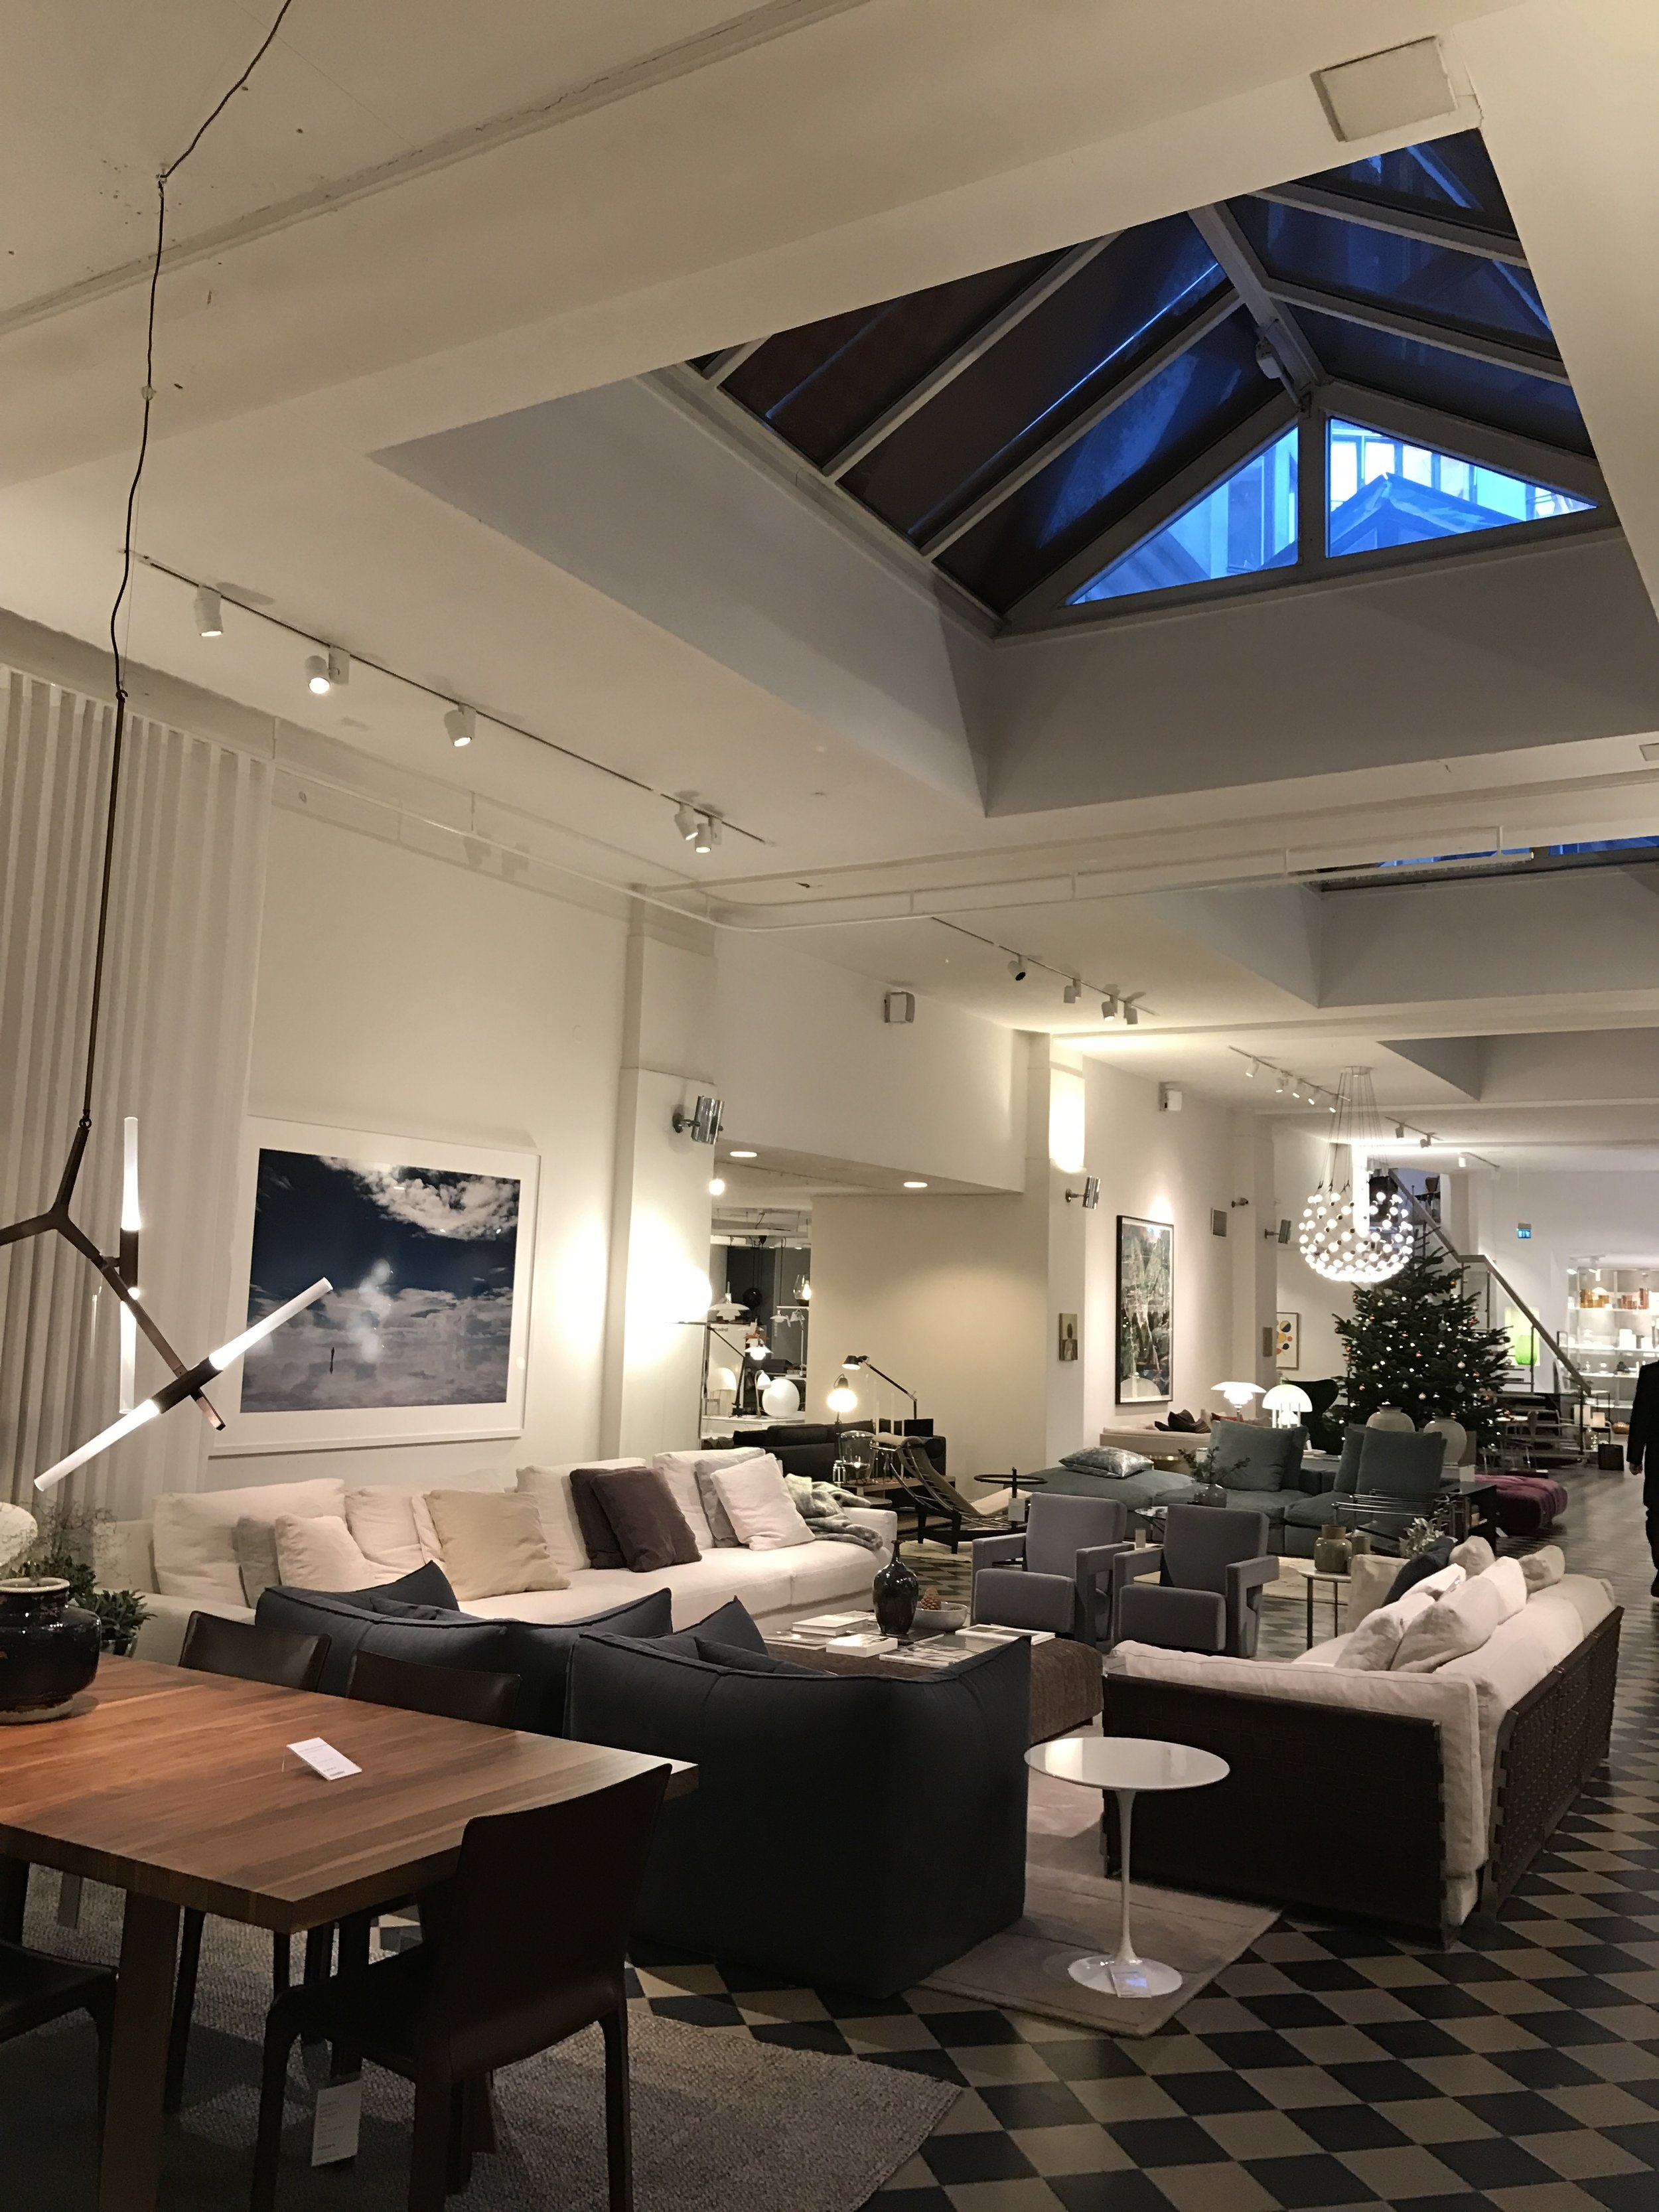 Amazing home interior boutique in Ostermalm